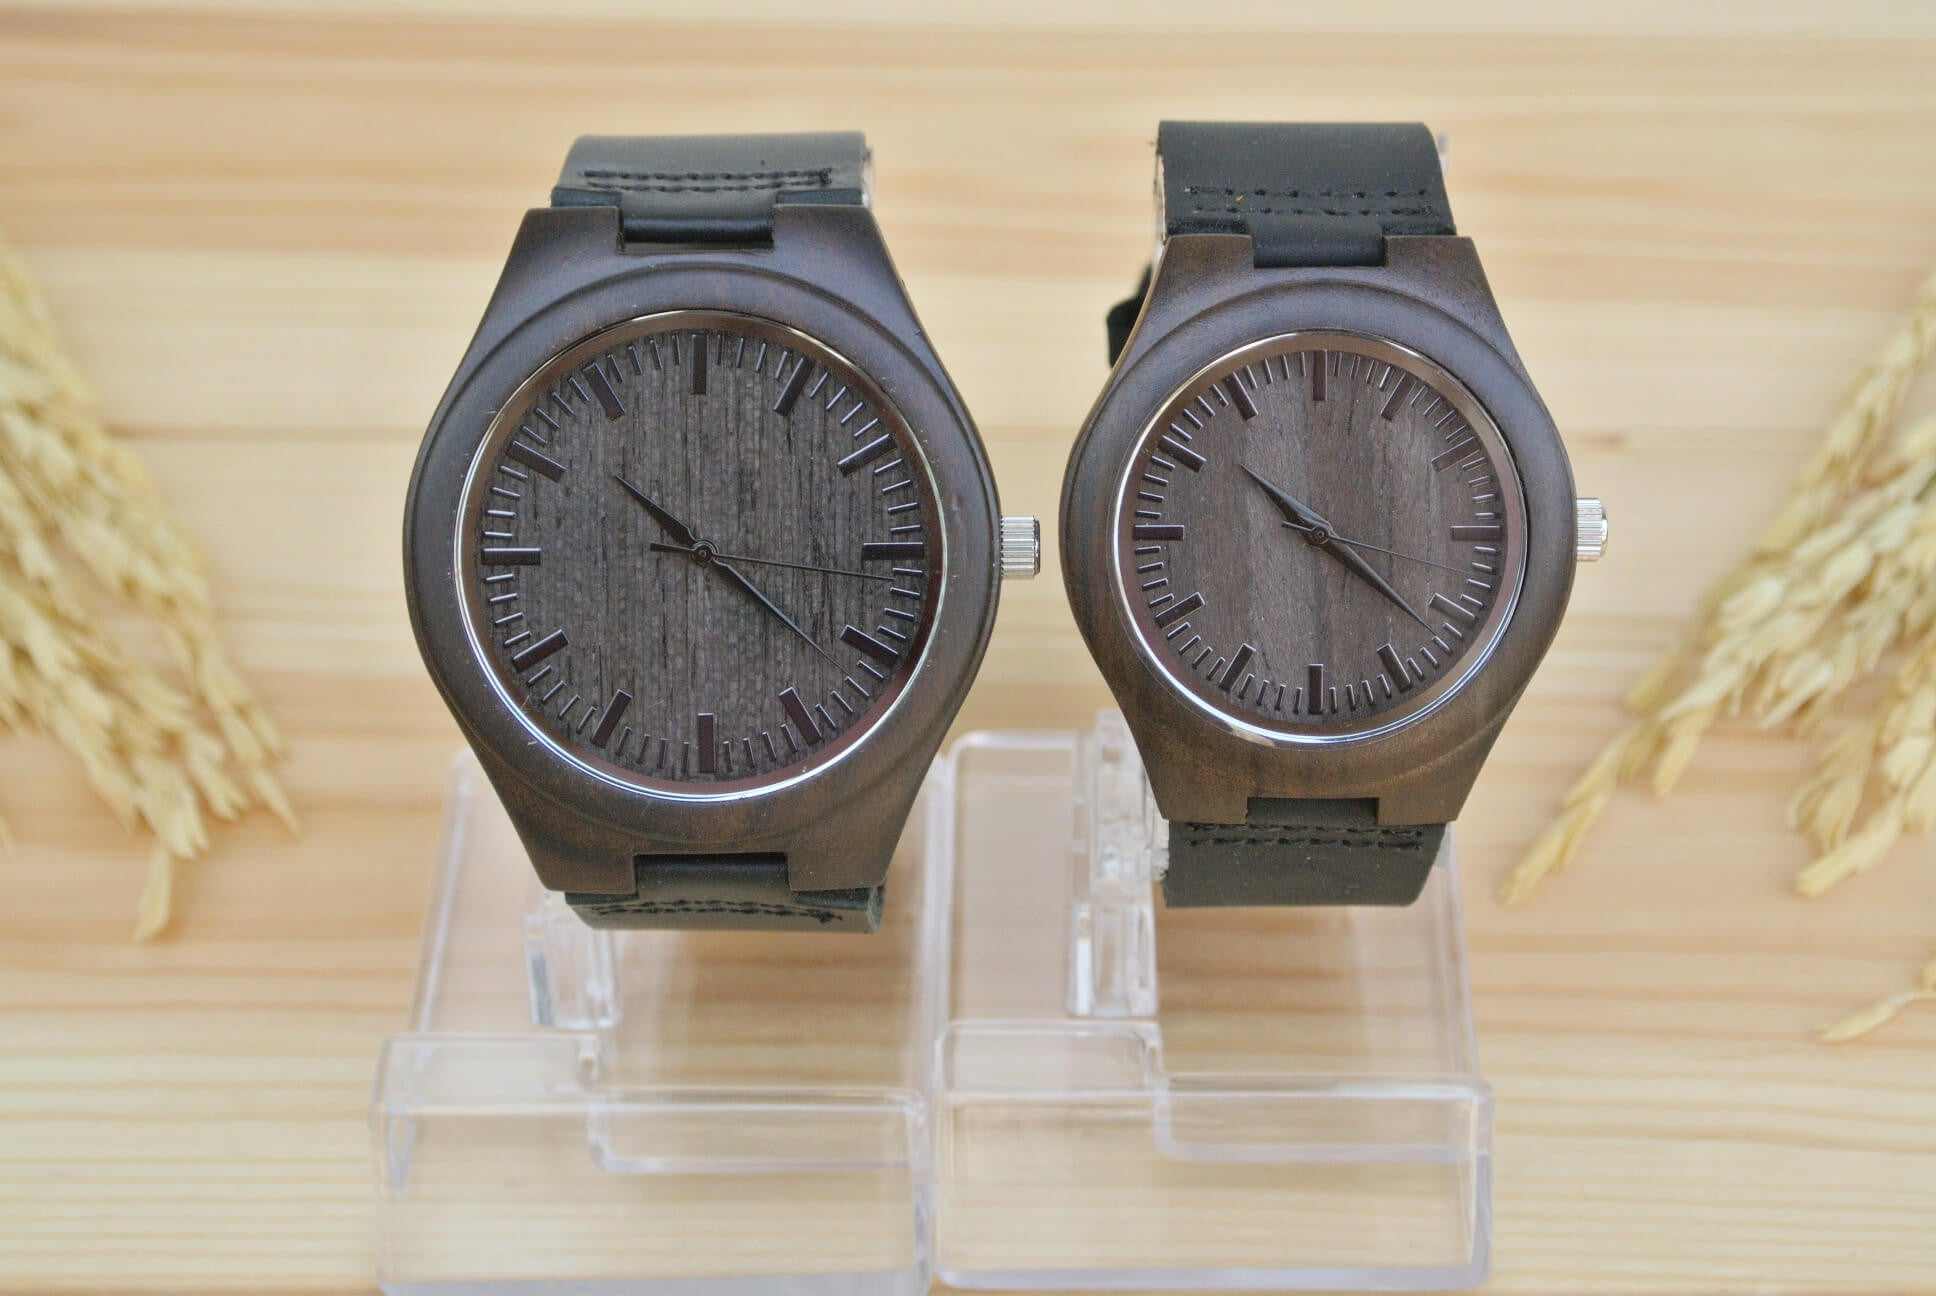 c94d14b9f6307 Personalized Engraved Wooden Watches - WoodChroNos